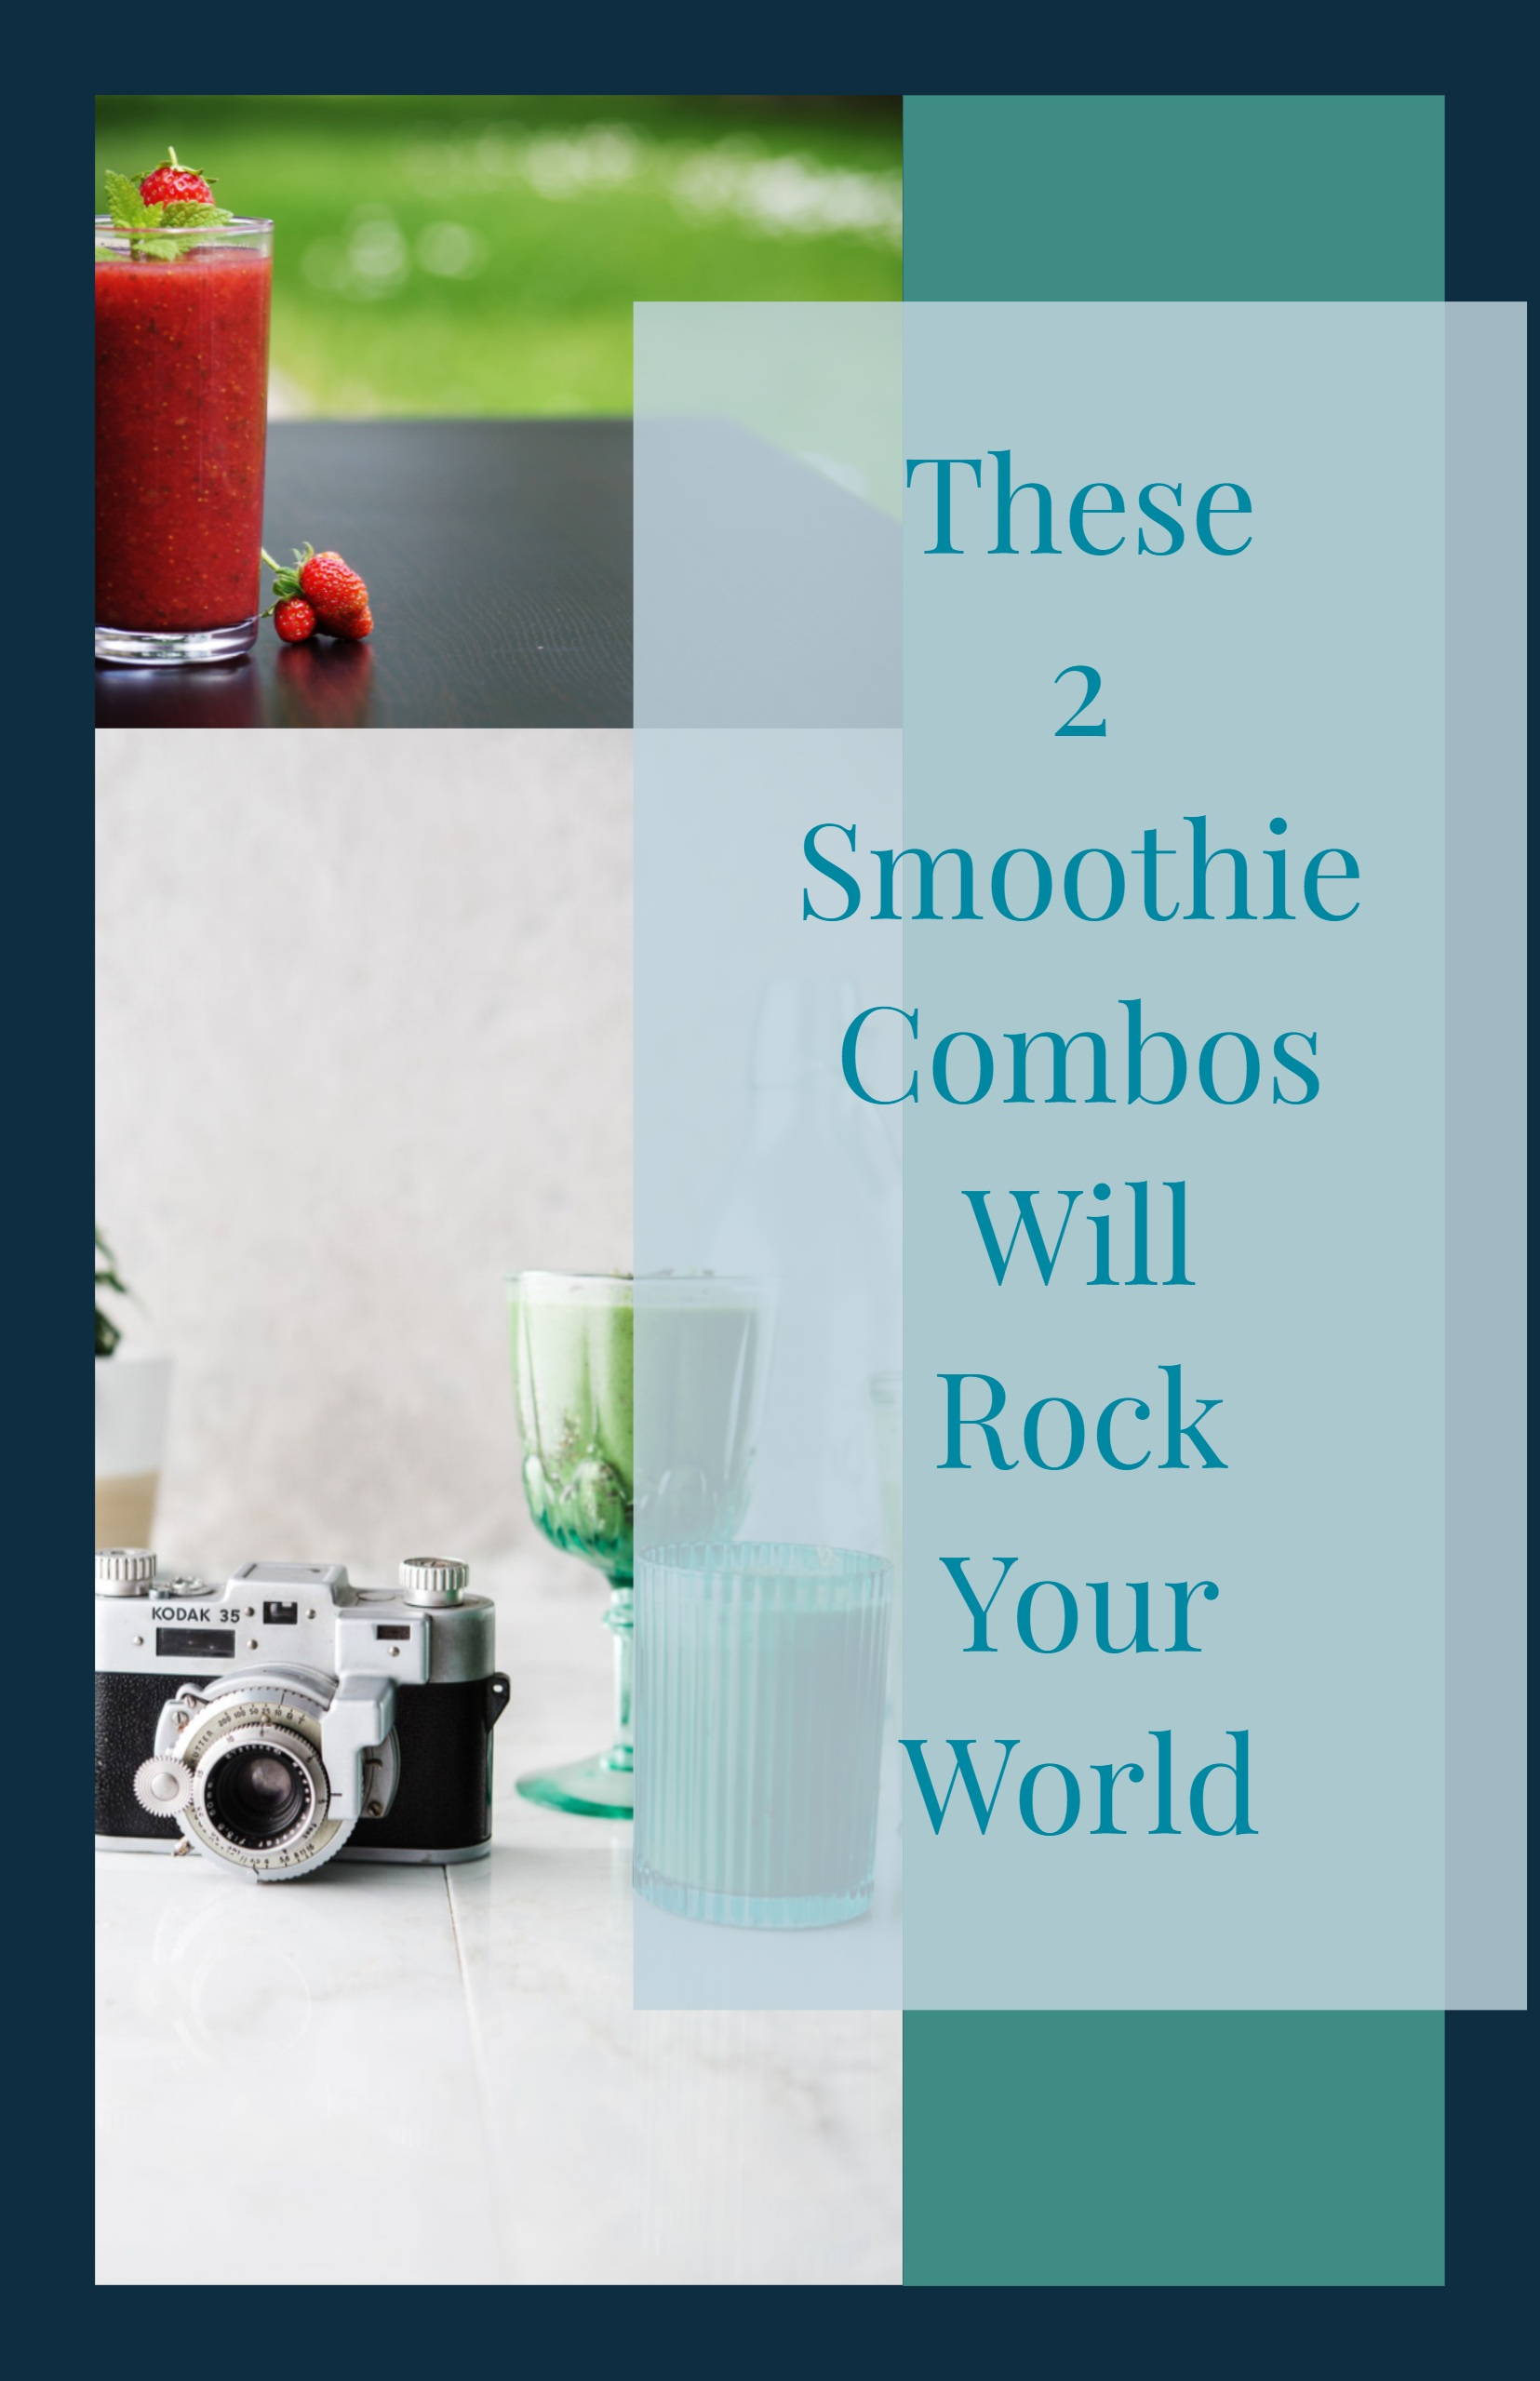 These 2 smoothie combos will rock your world